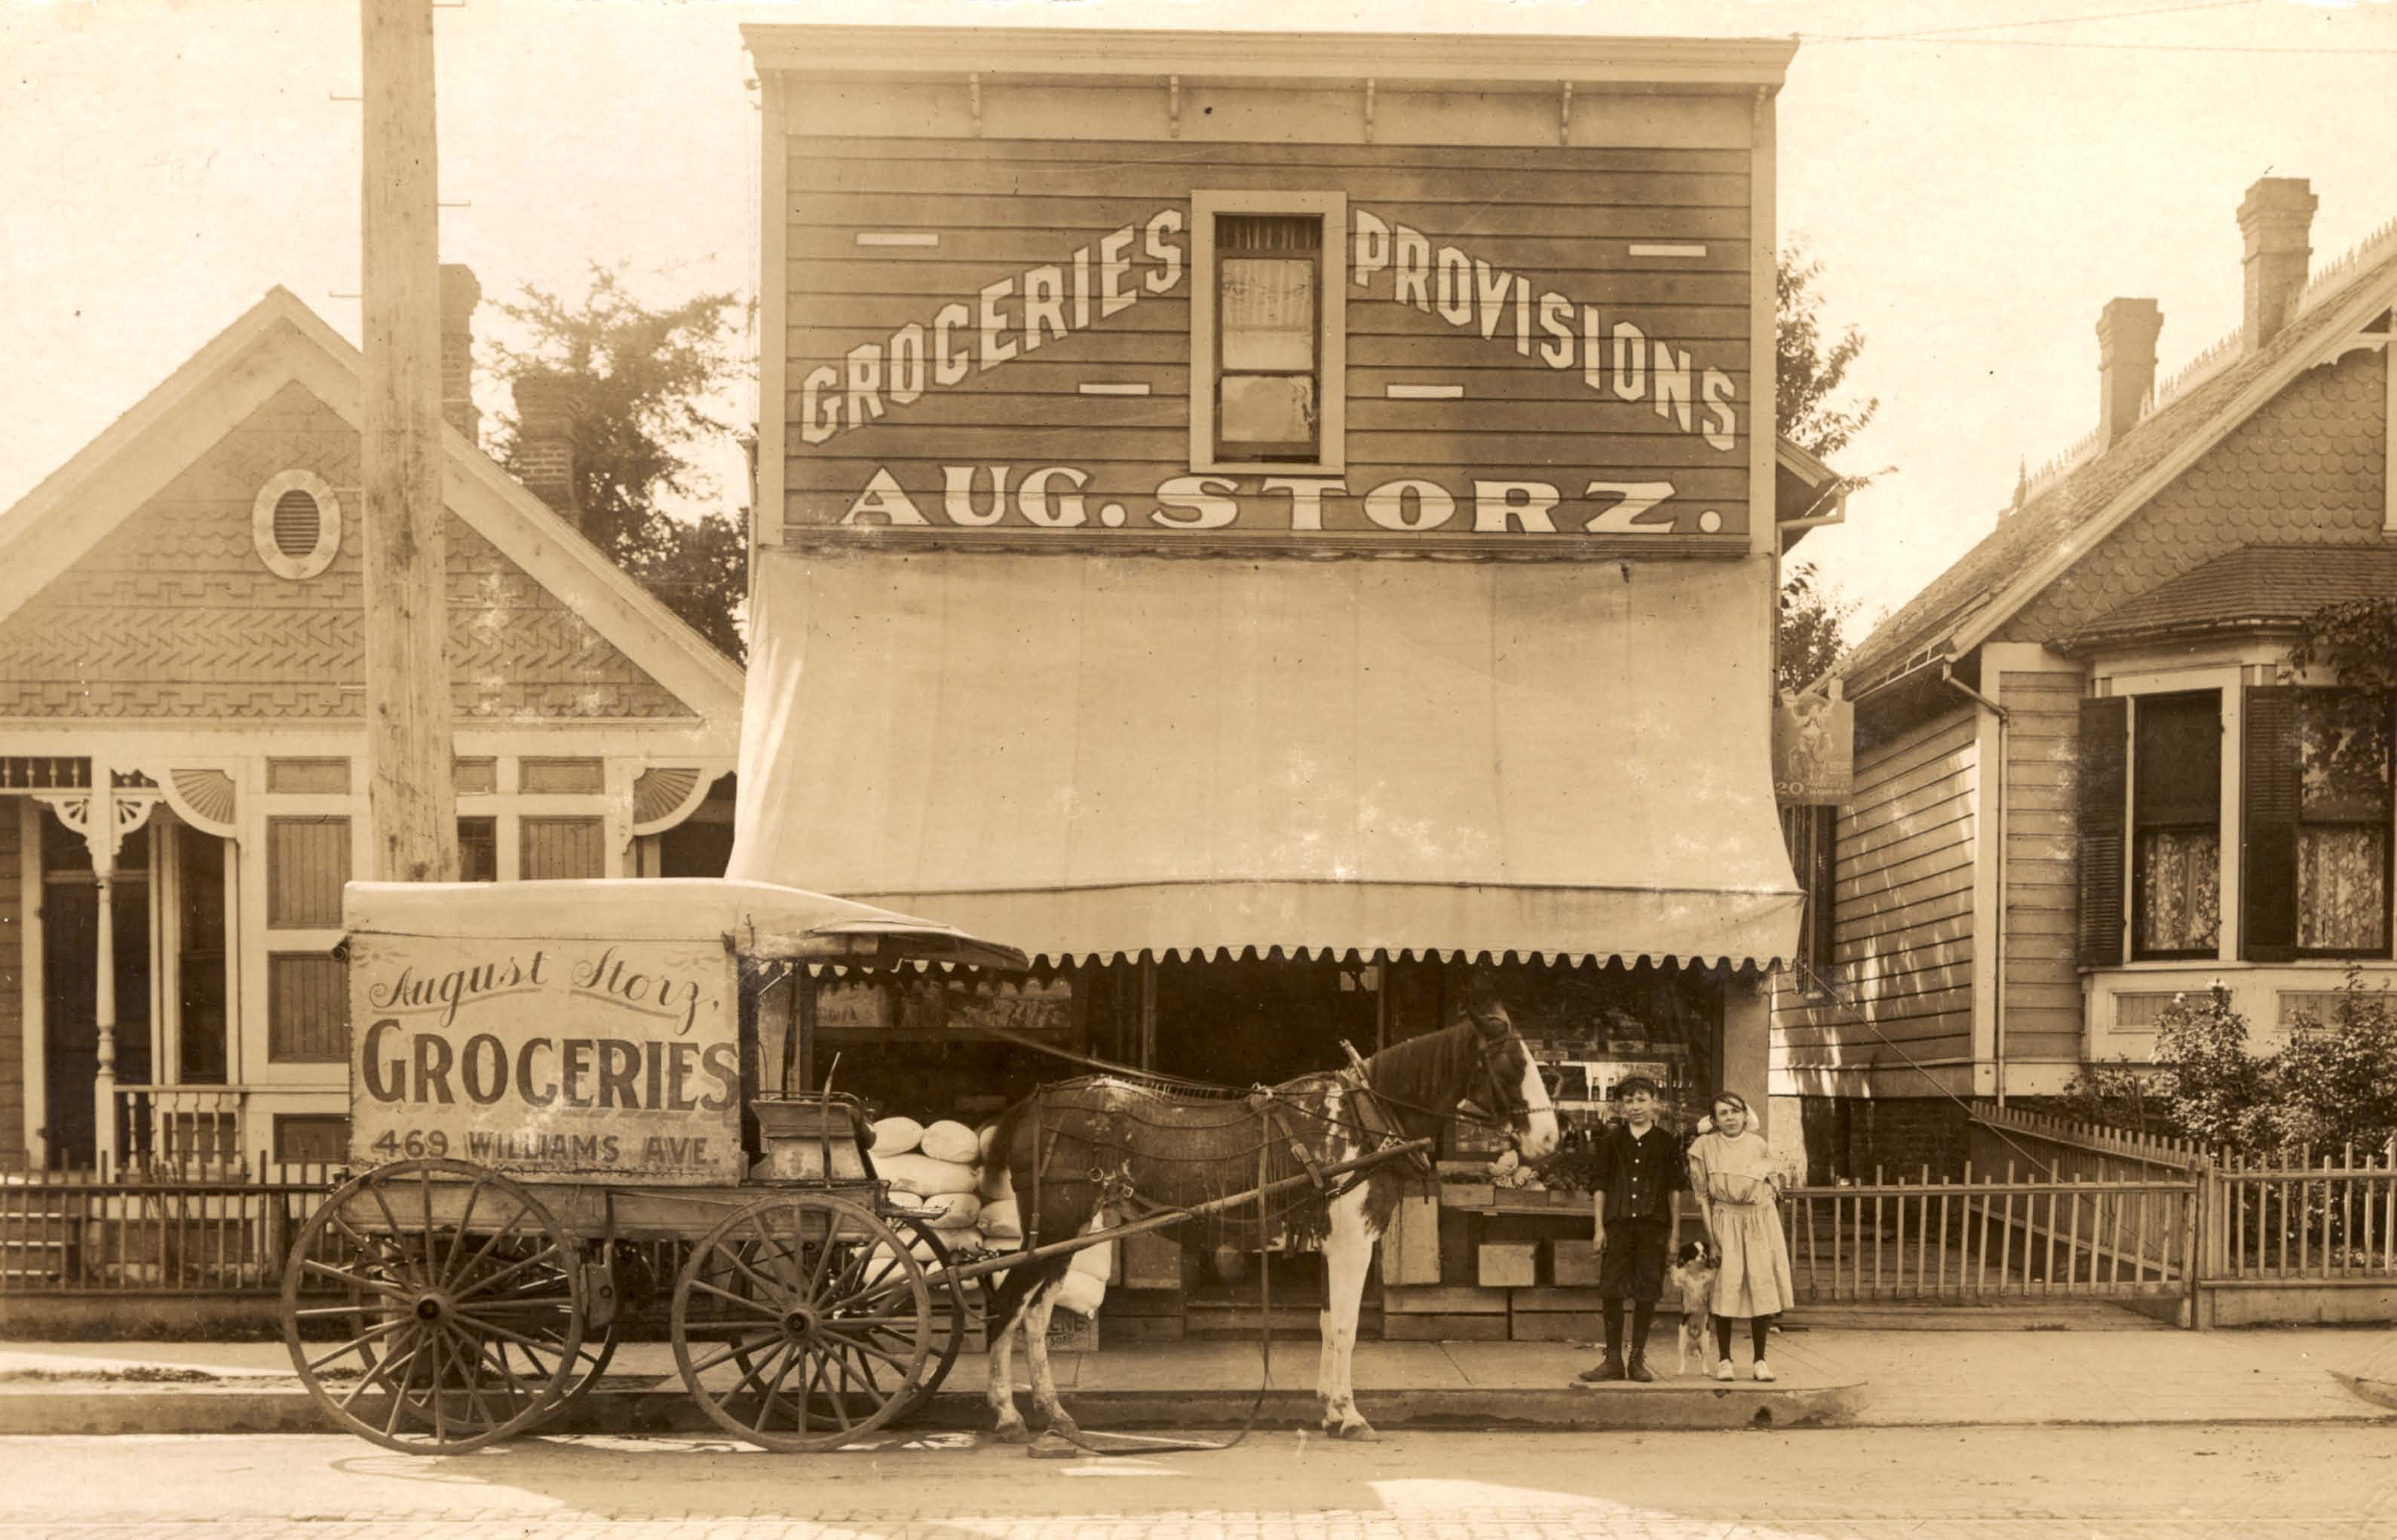 1890s-grocery-store-wagon